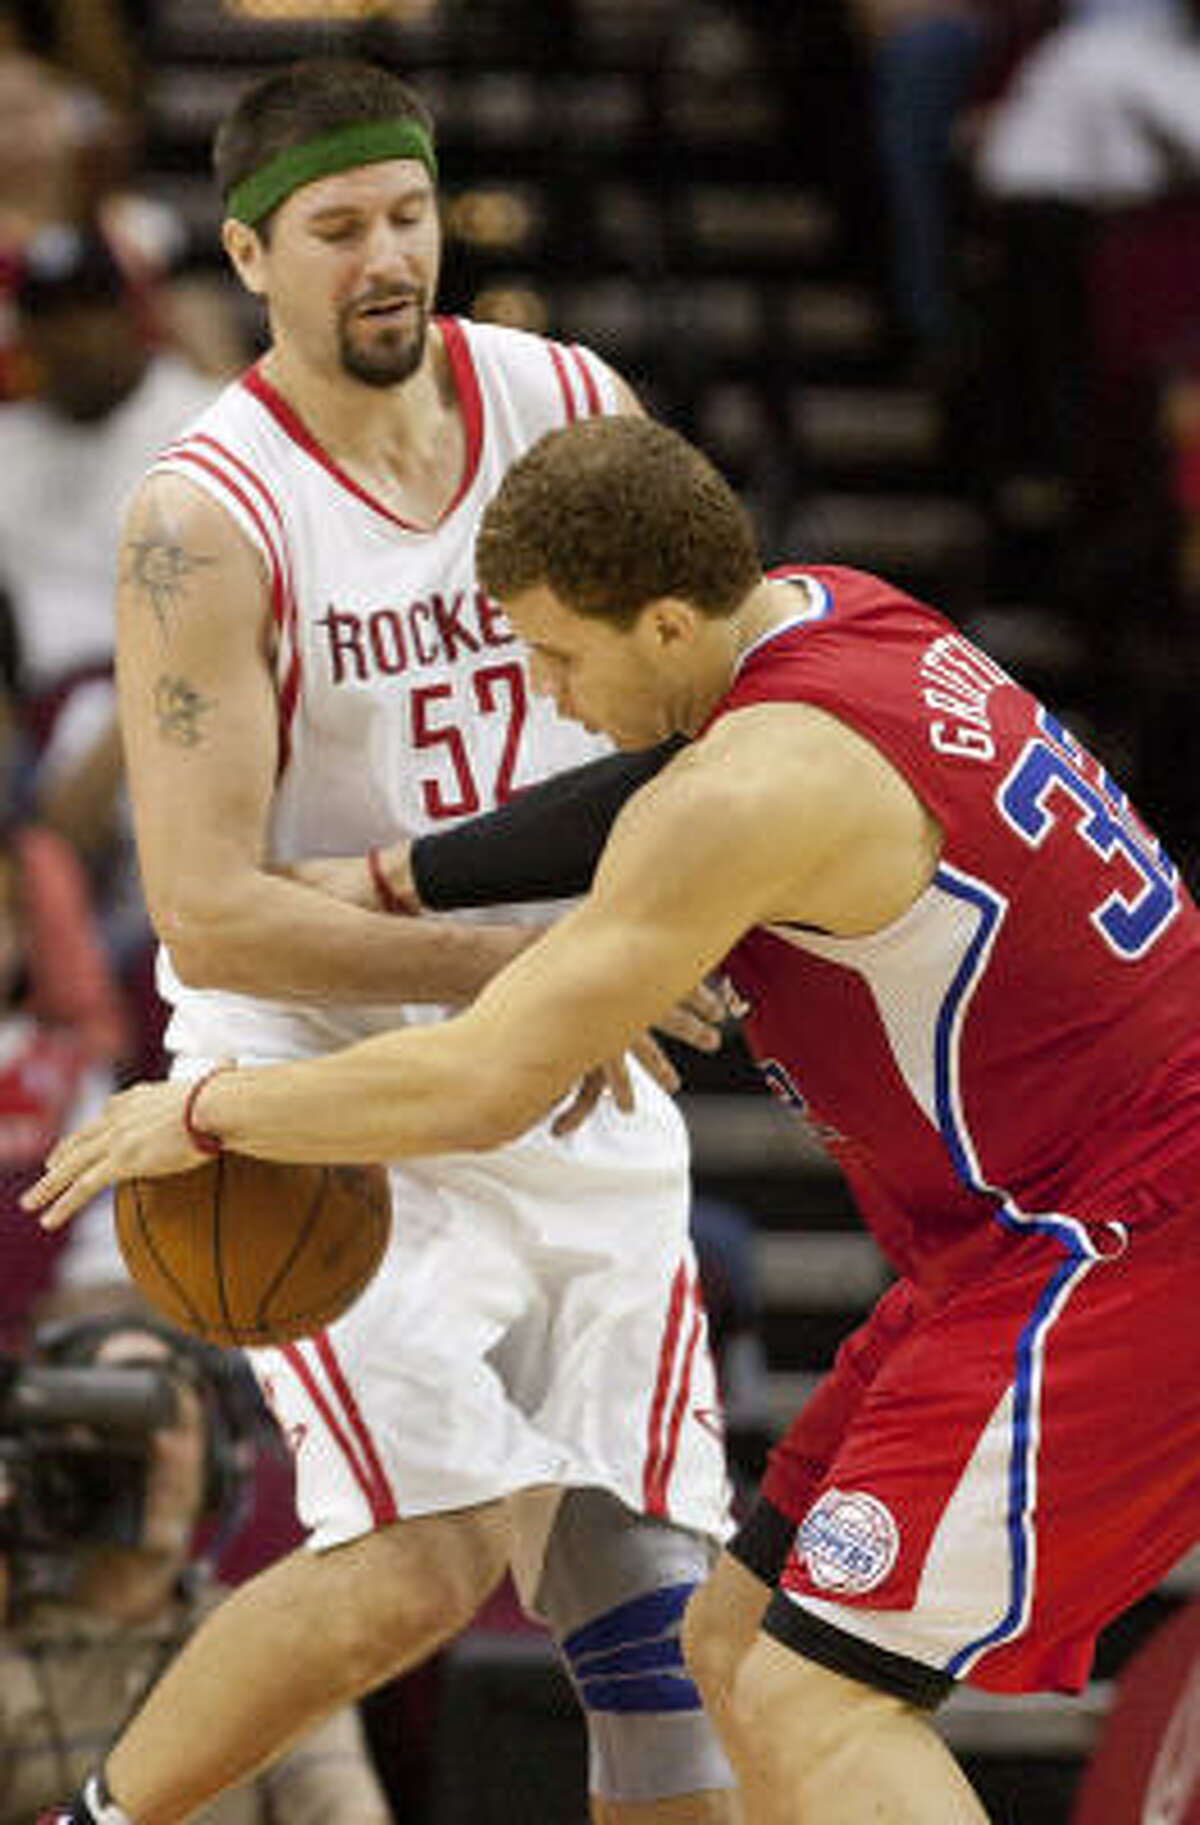 Houston Rockets center Brad Miller (52) knocks the ball loose from the hands of Los Angeles Clippers forward Blake Griffin (32).